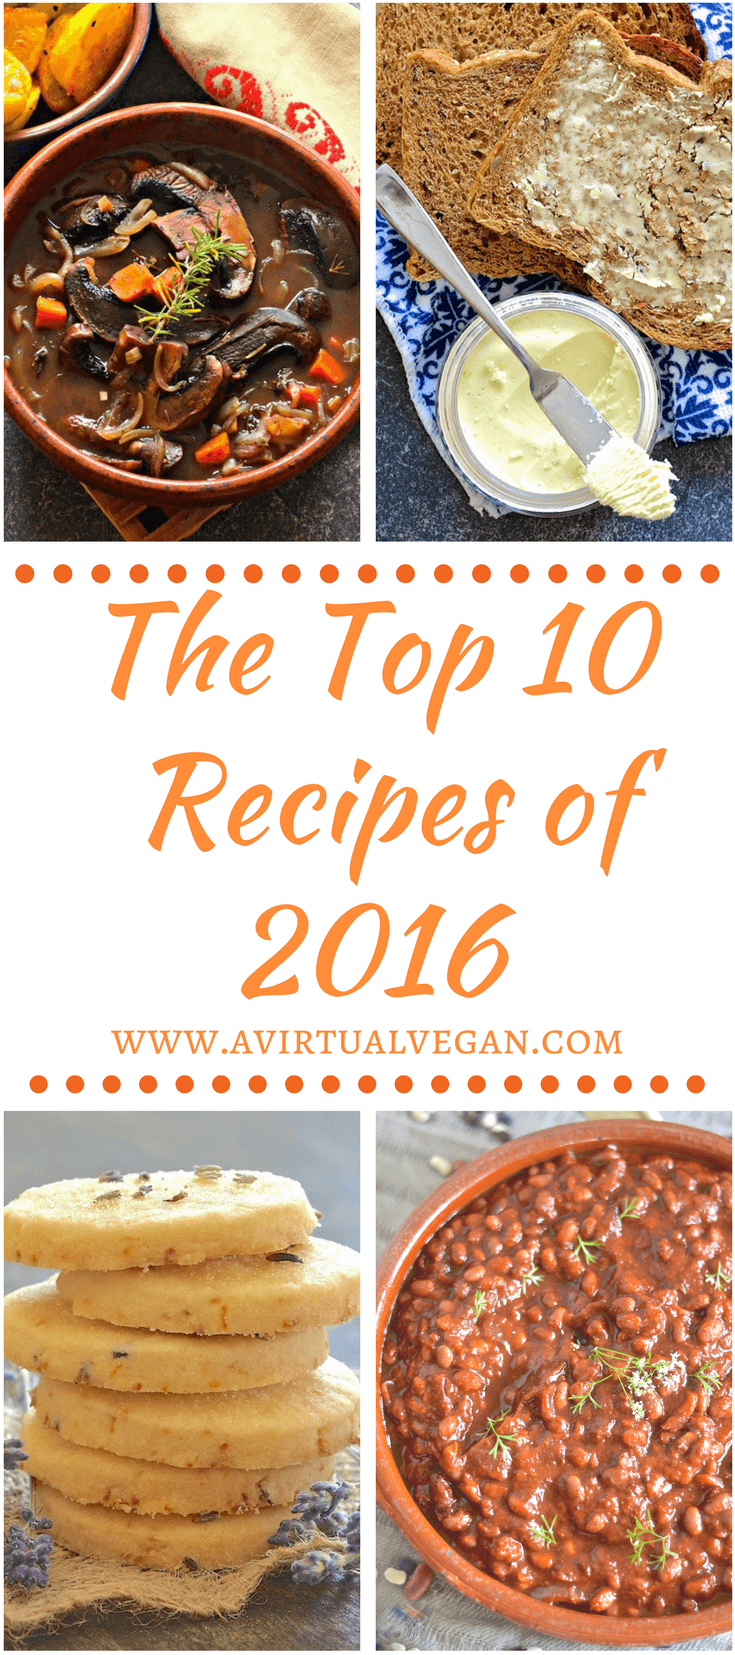 Find out what the top 10 recipes on A Virtual Vegan in 2016 were!